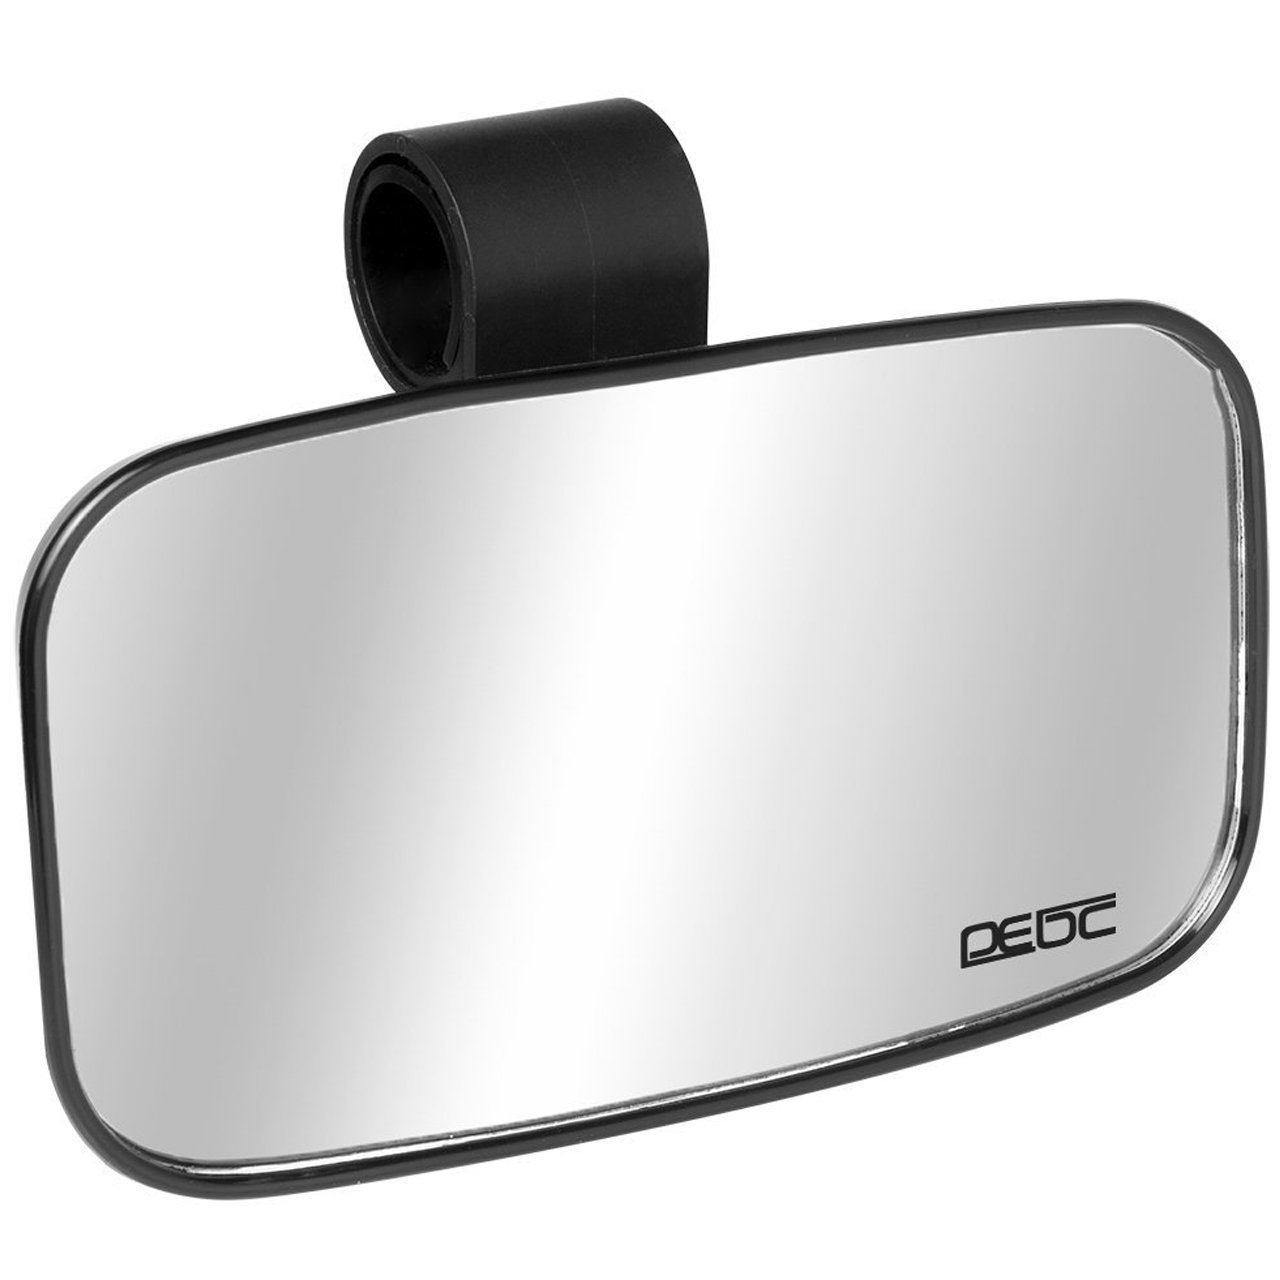 Small UTV Clear Rear View Center Mirror for 1.5' -1.75'- 2' Roll Cage with Shatter-proof Tempered Glass Mirrors for Polaris Ranger RZR Honda Pioneer Can Am Commander Rhino Kubota RTV Offroad Mirrors DEDC